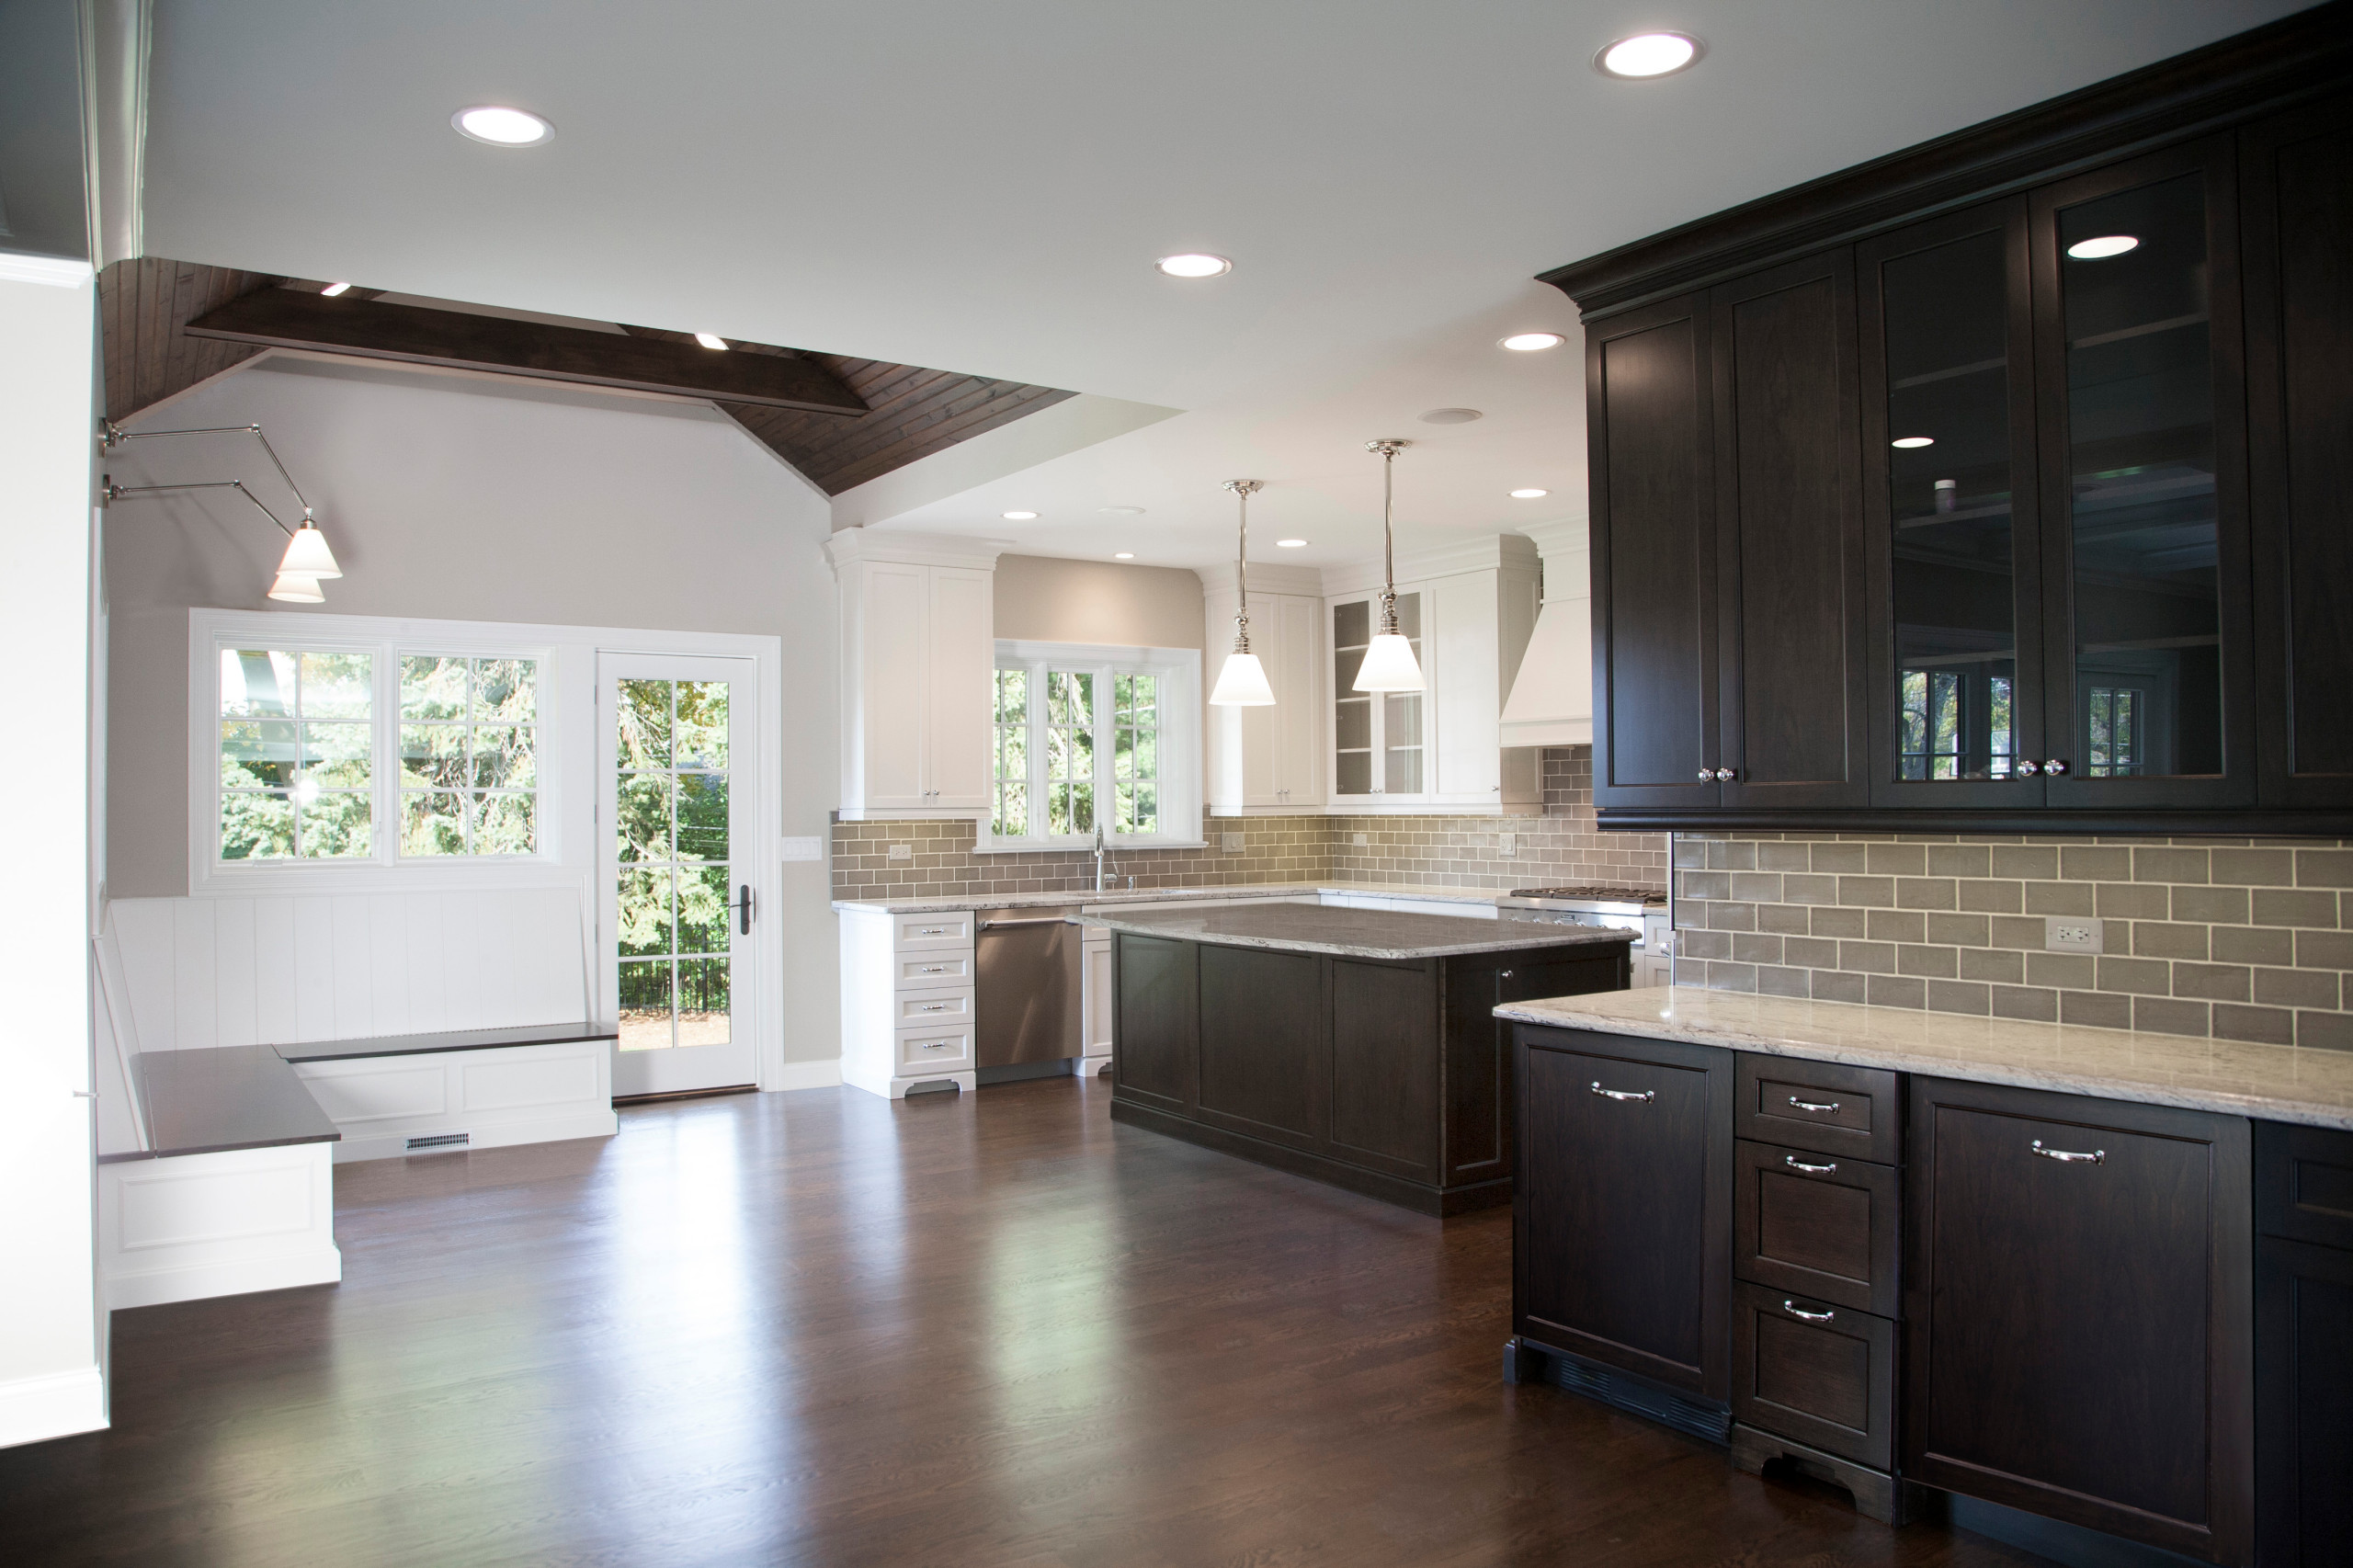 White Kitchen stained Perimeter Tongue and Groove ceiling and Banquette